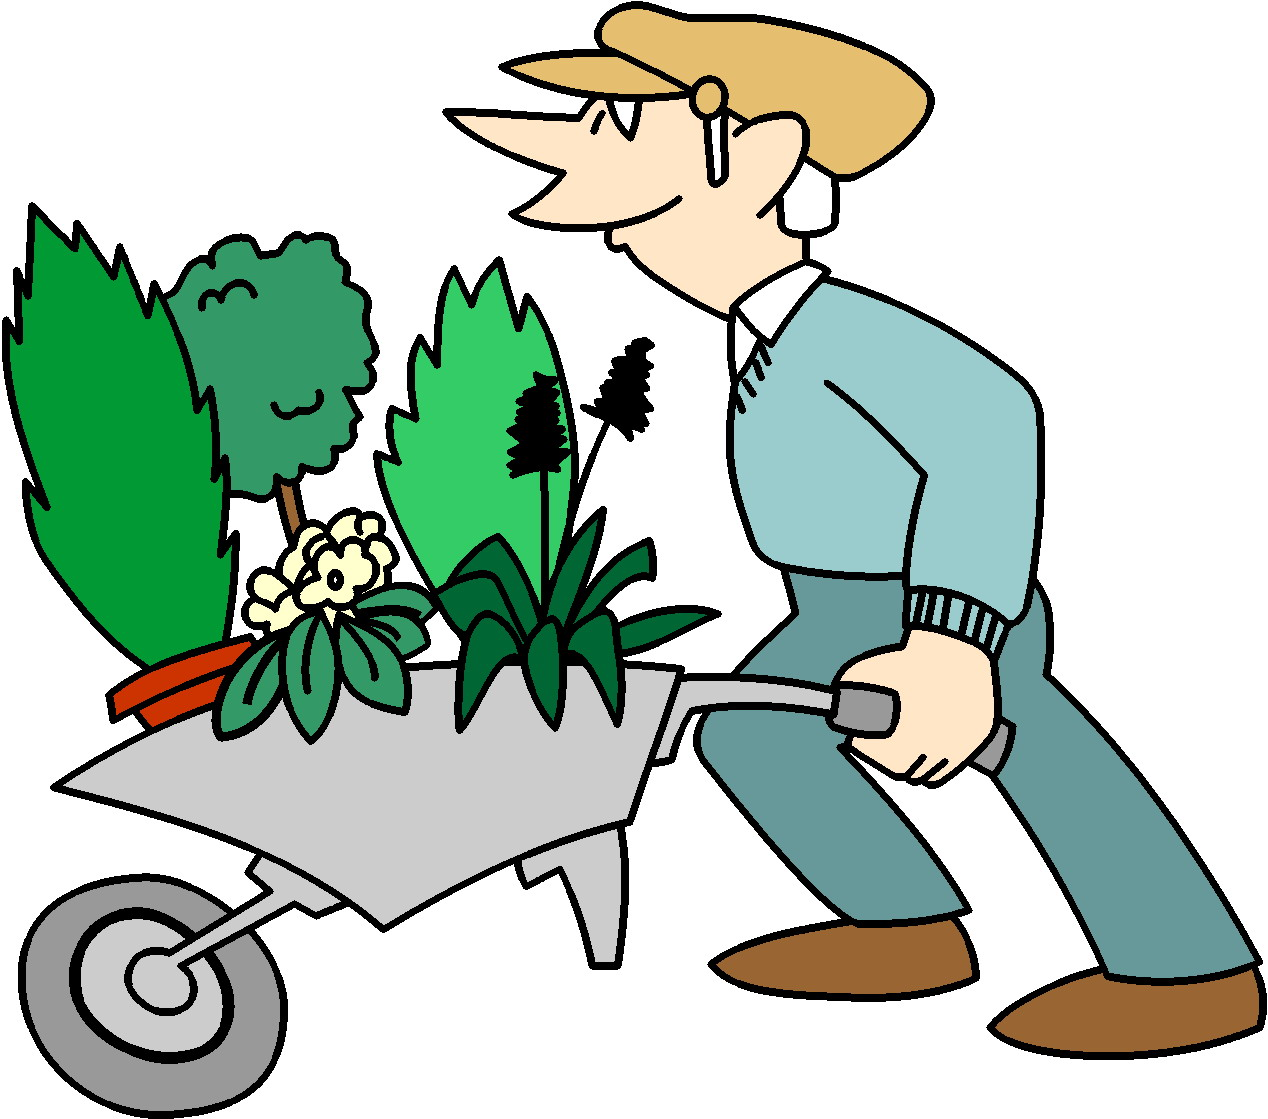 people gardening clip art - HD 1268×1119